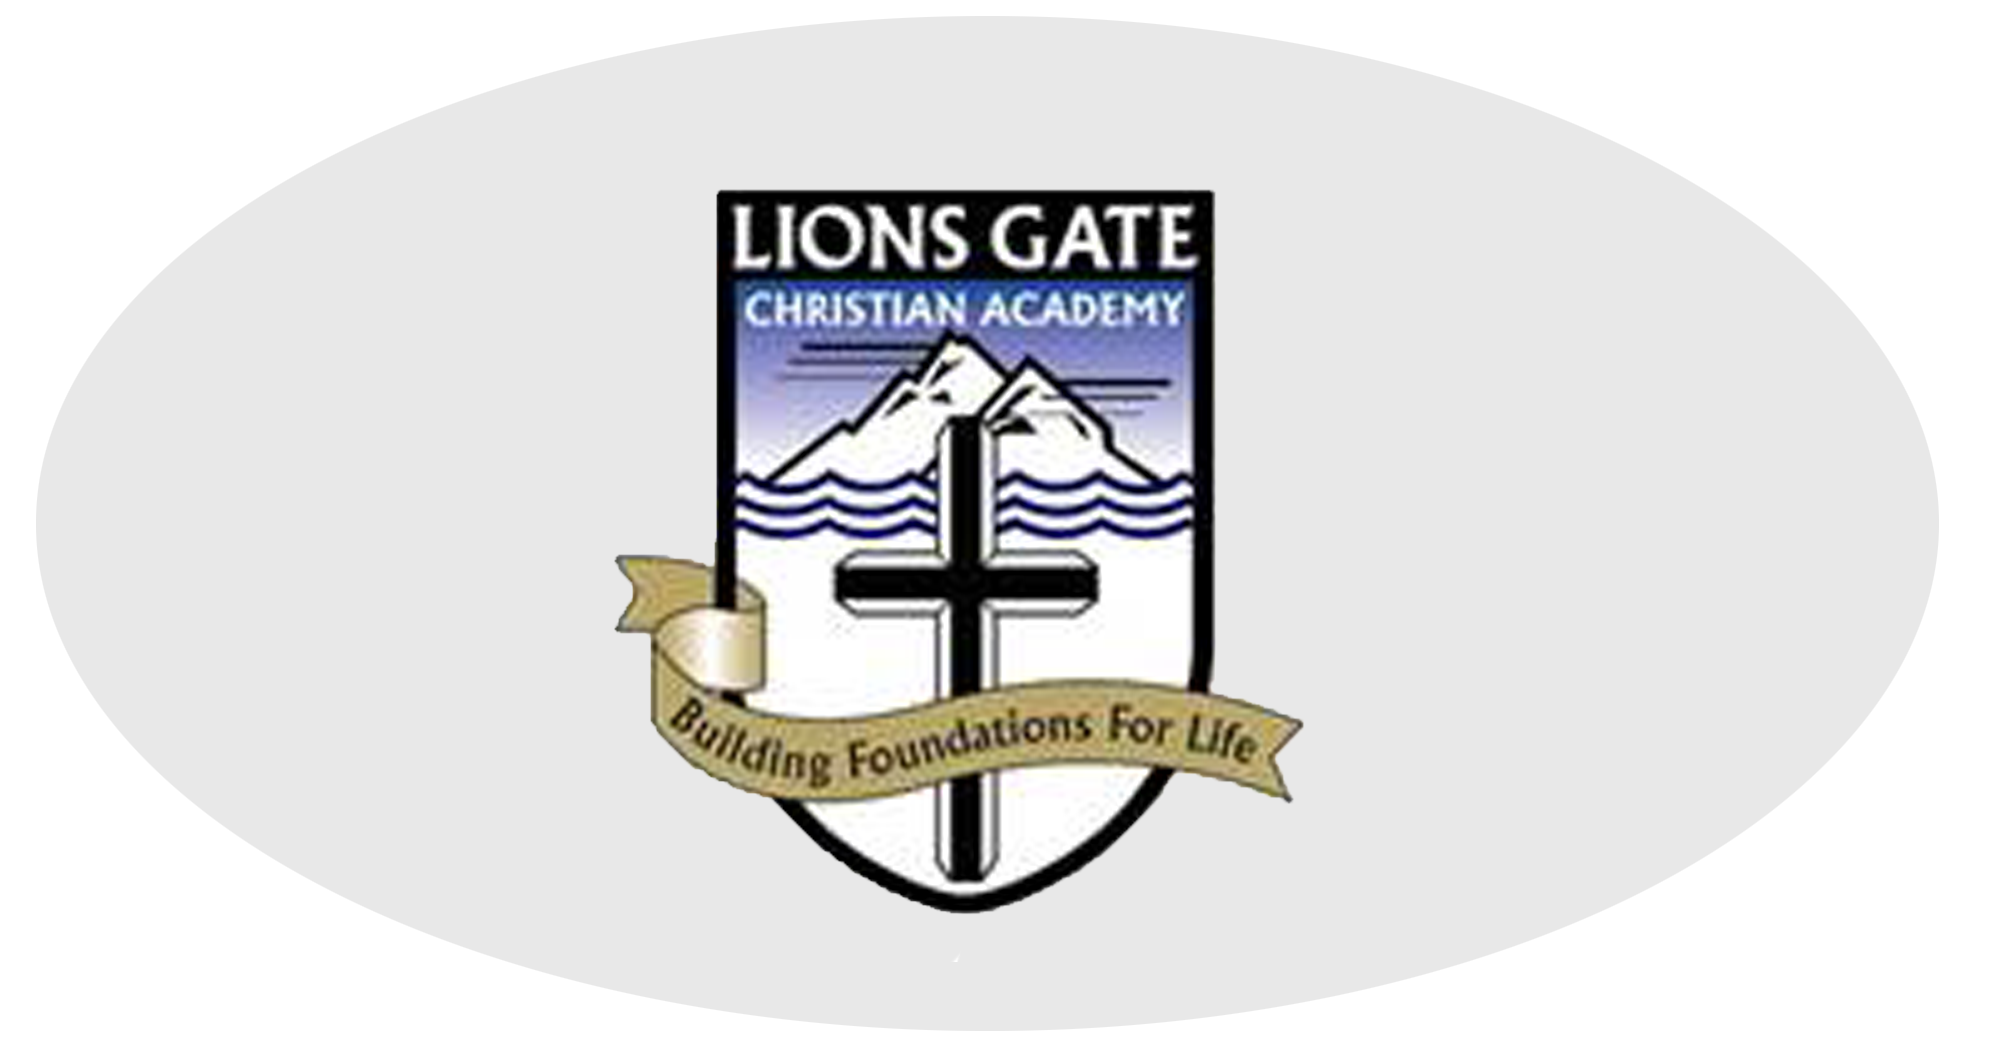 Lionsgate Gate Christian Academy